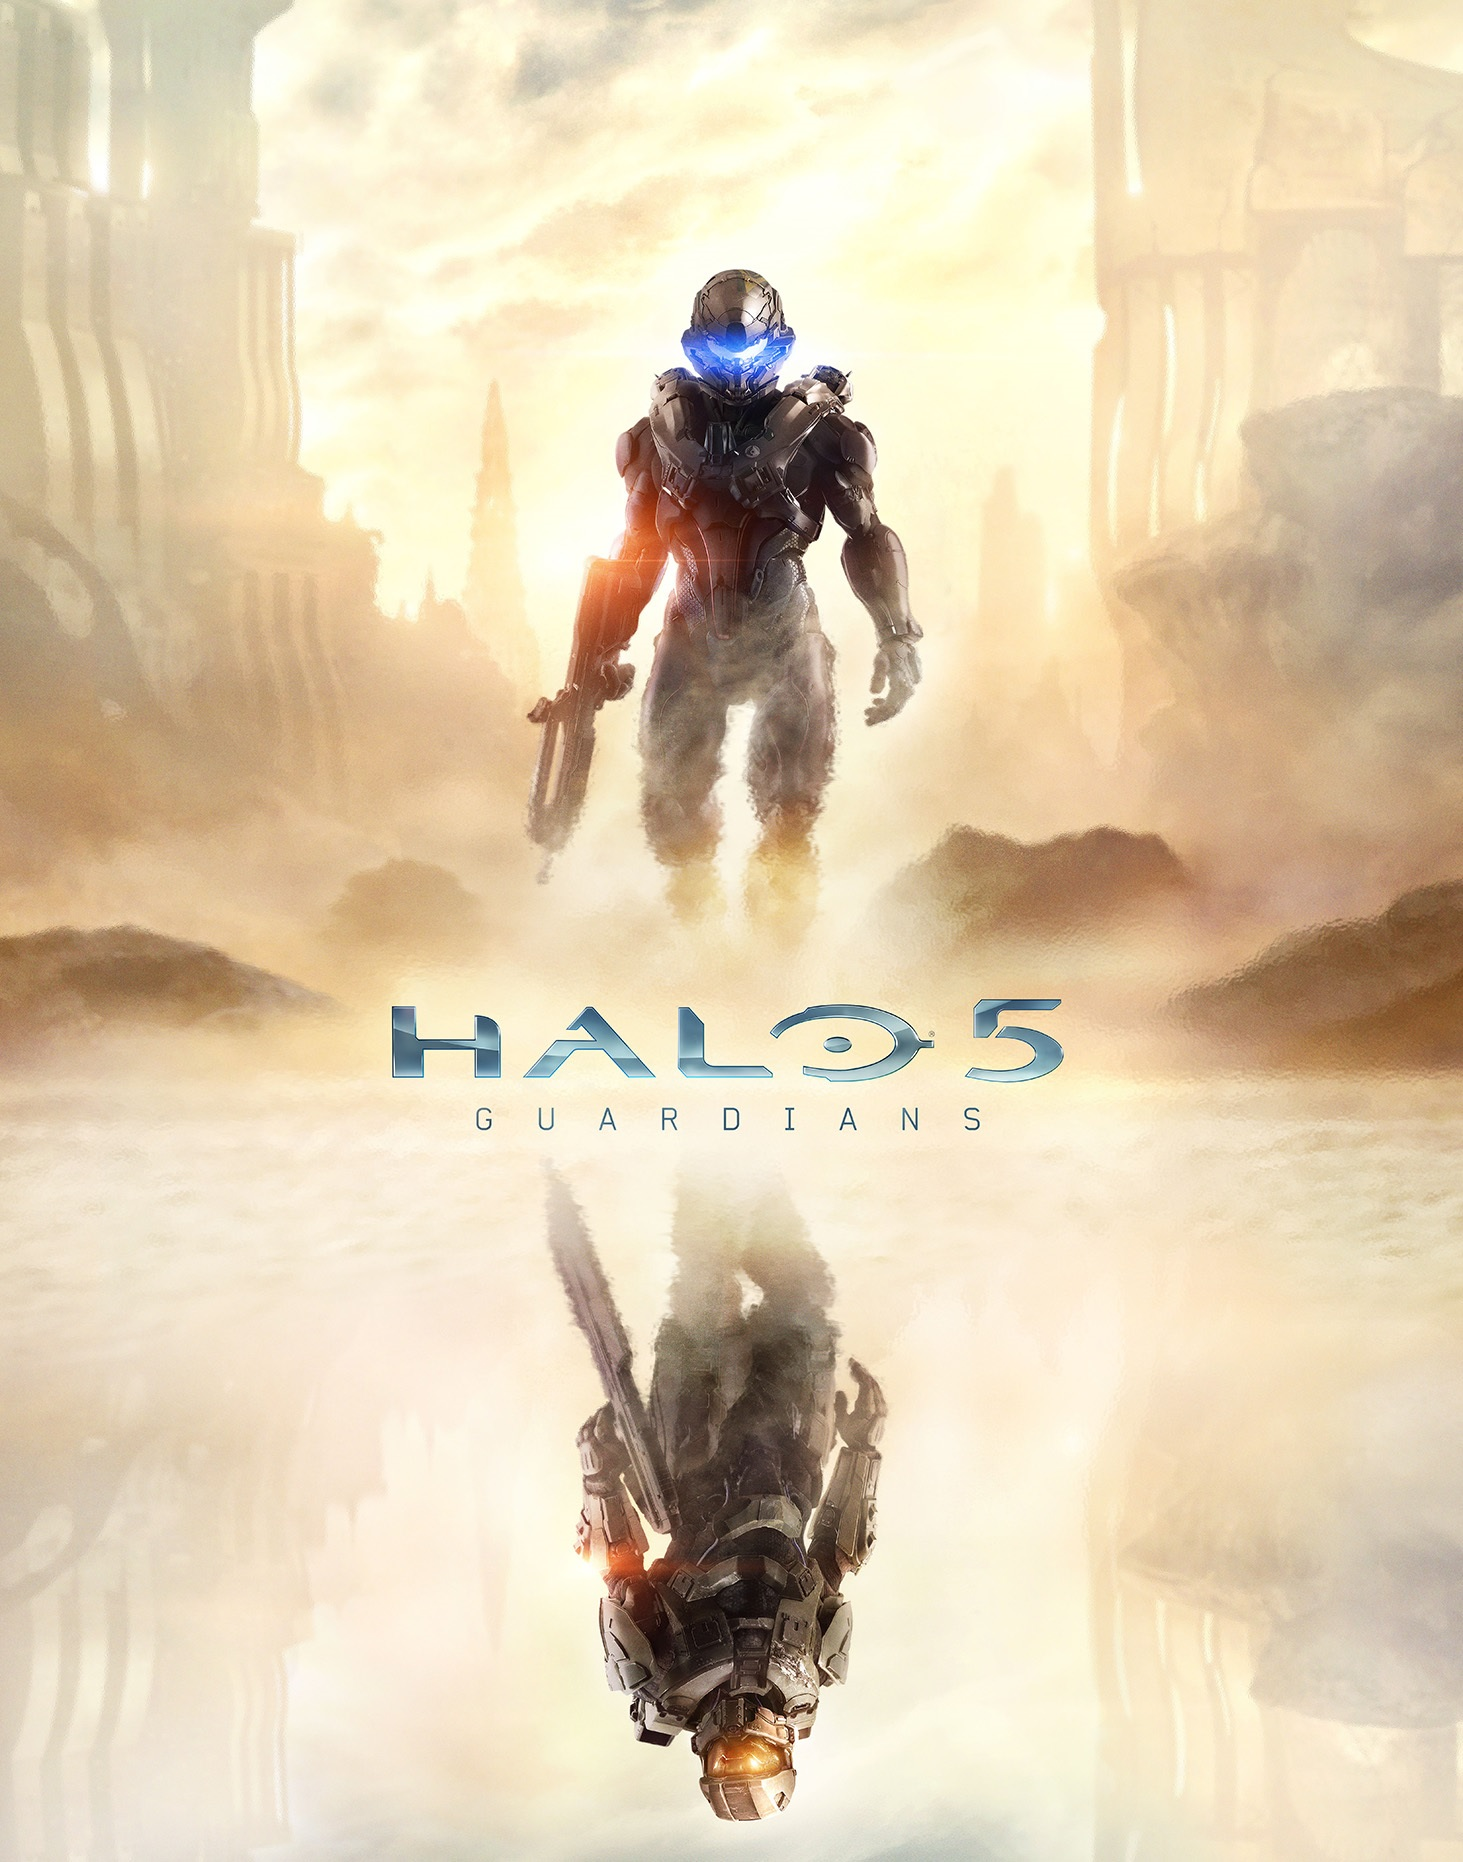 halo-5-guardians-teaser-art